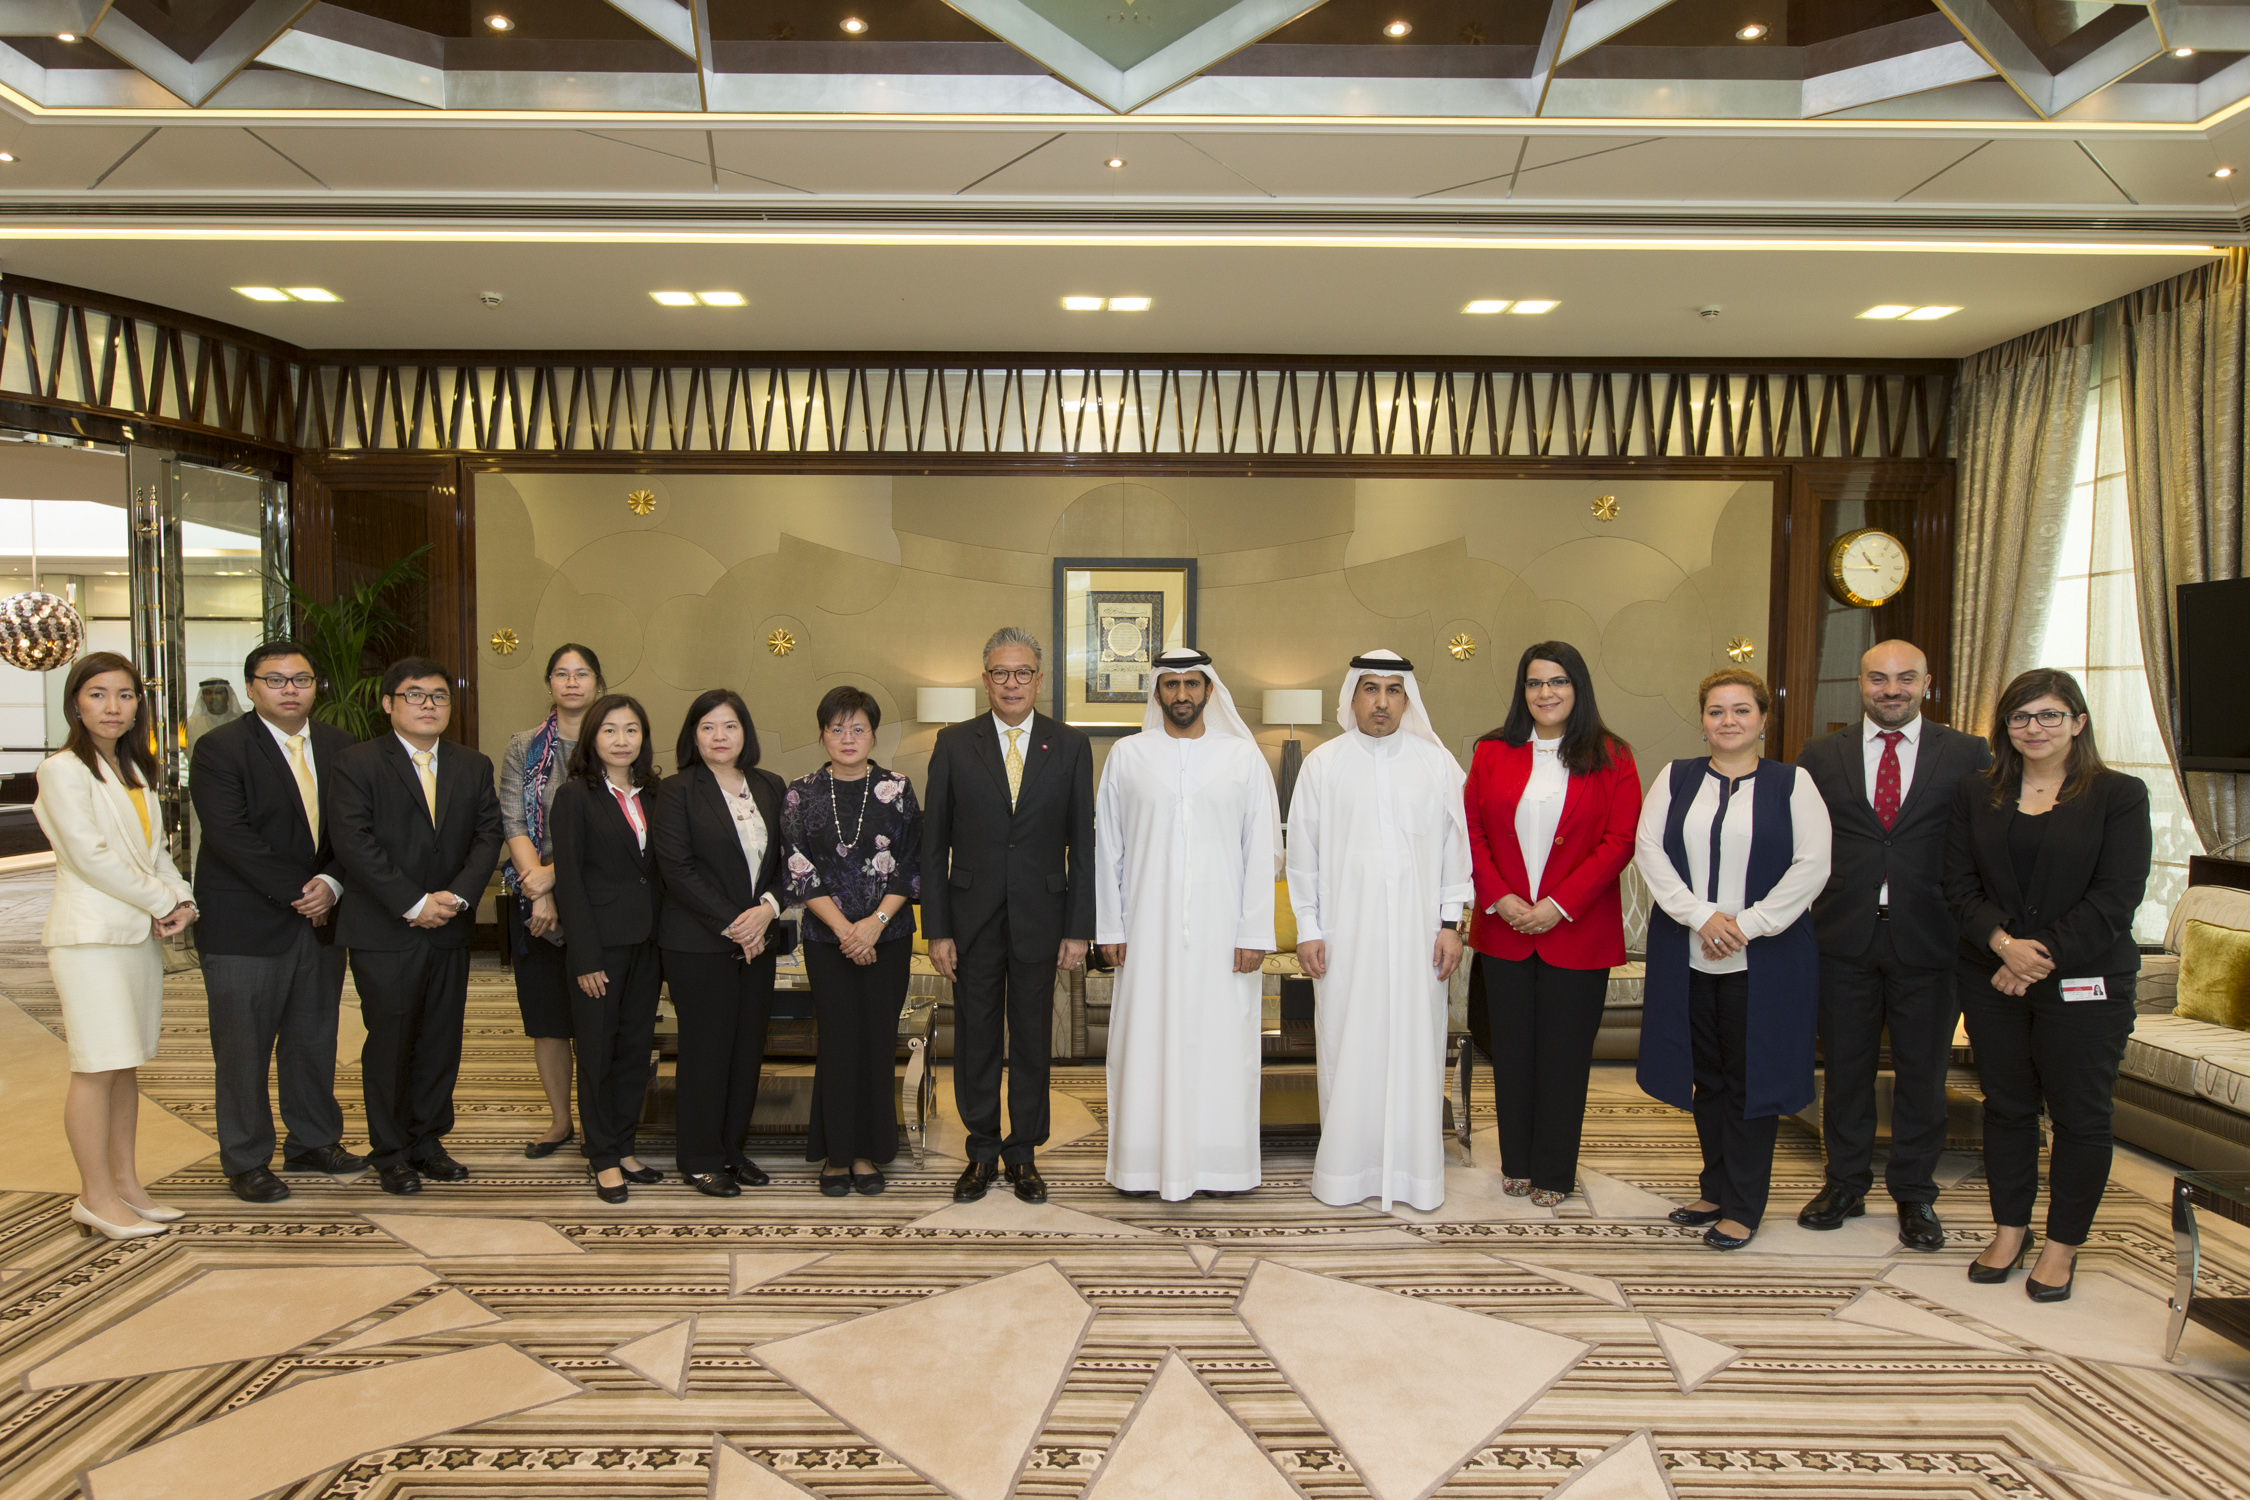 The Government of Dubai Legal Affairs Department briefed a Thai delegation on its experience in the legal sector